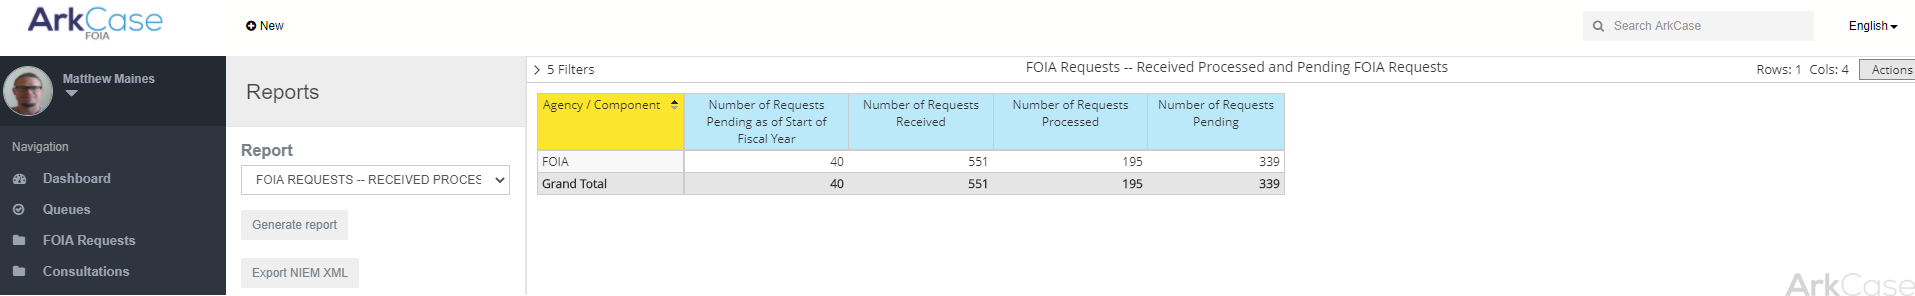 Received Processed and Pending FOIA Requests